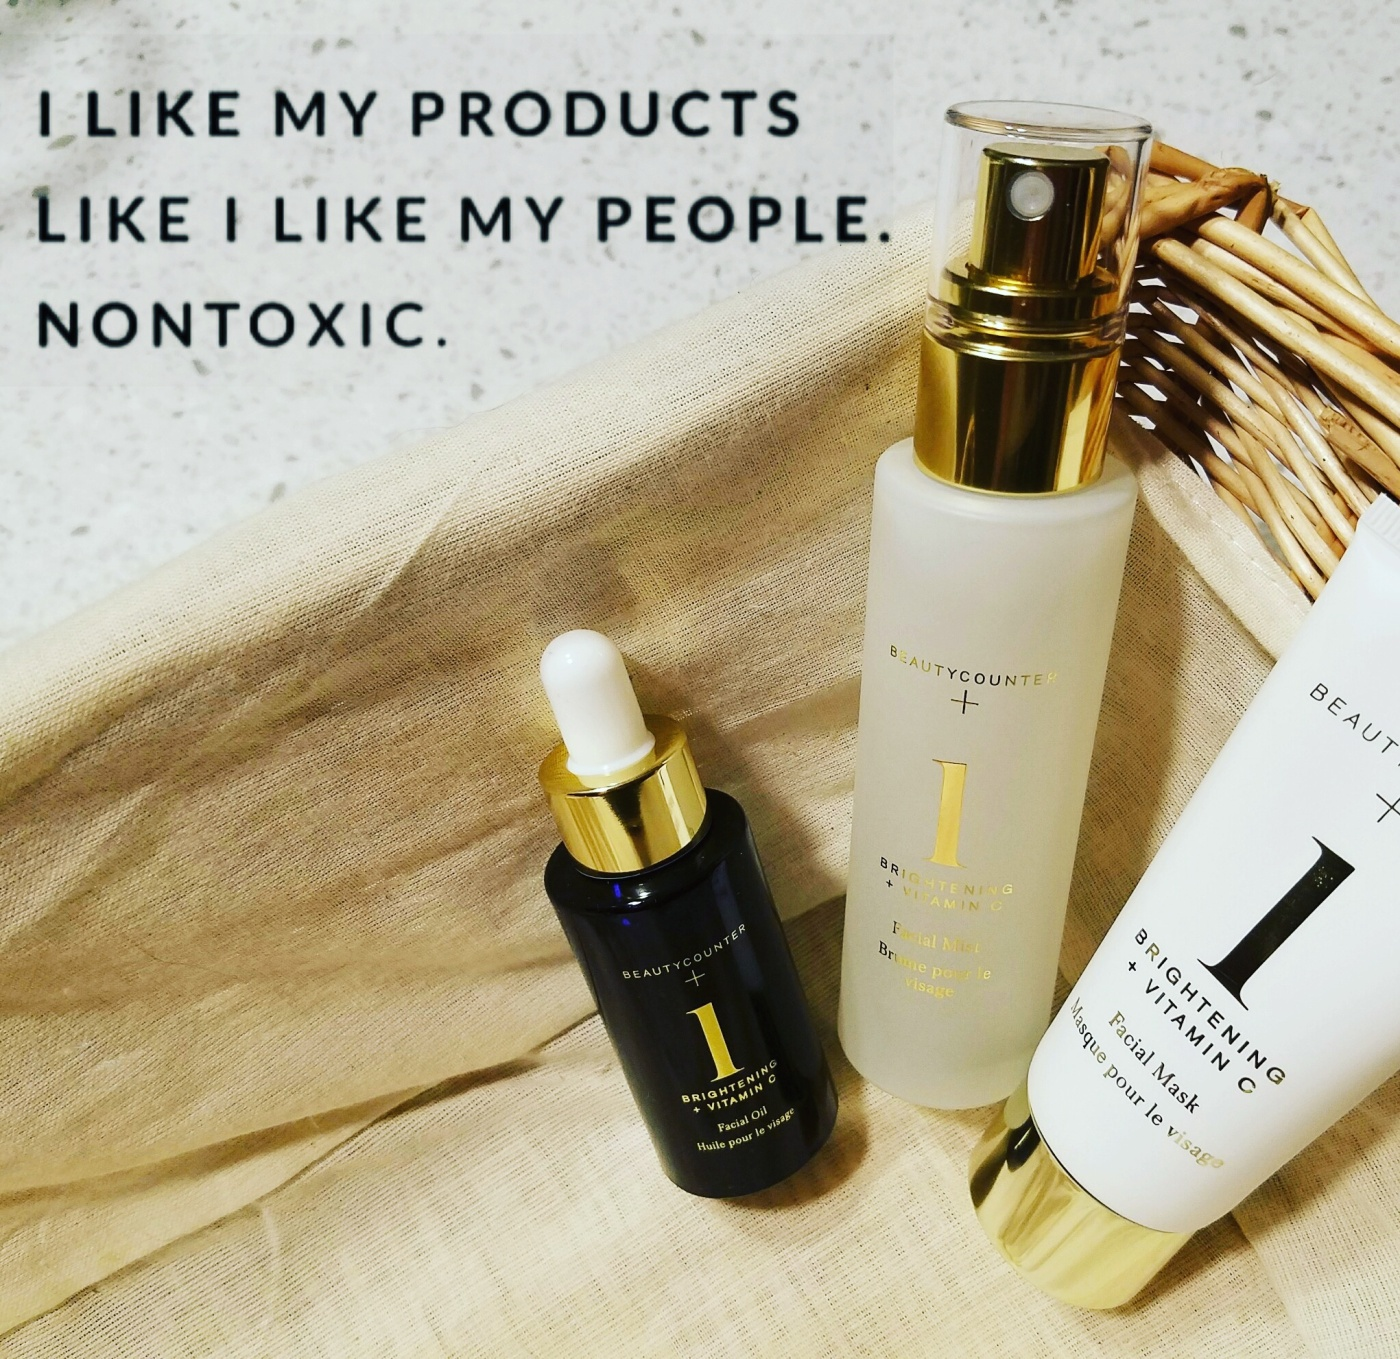 Better Beauty Vermont I like my products like I like my people. Nontoxic.